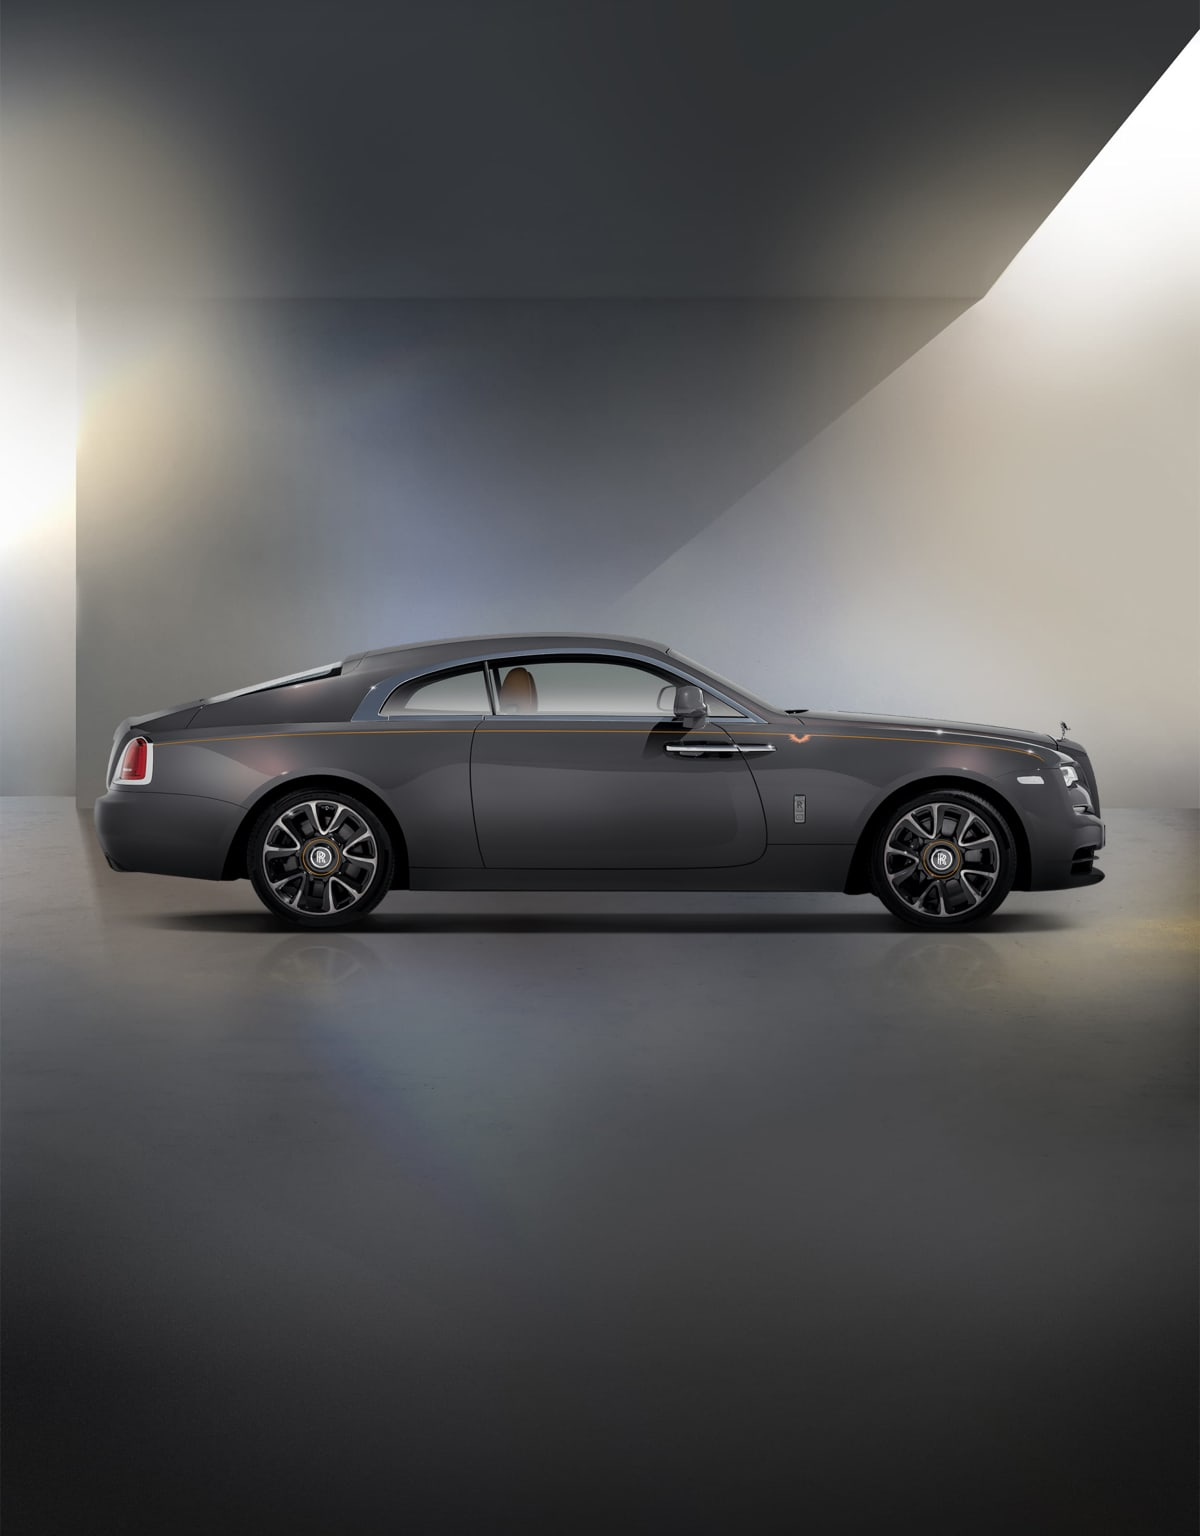 Side profile exterior of Rolls-Royce Wraith motor car.